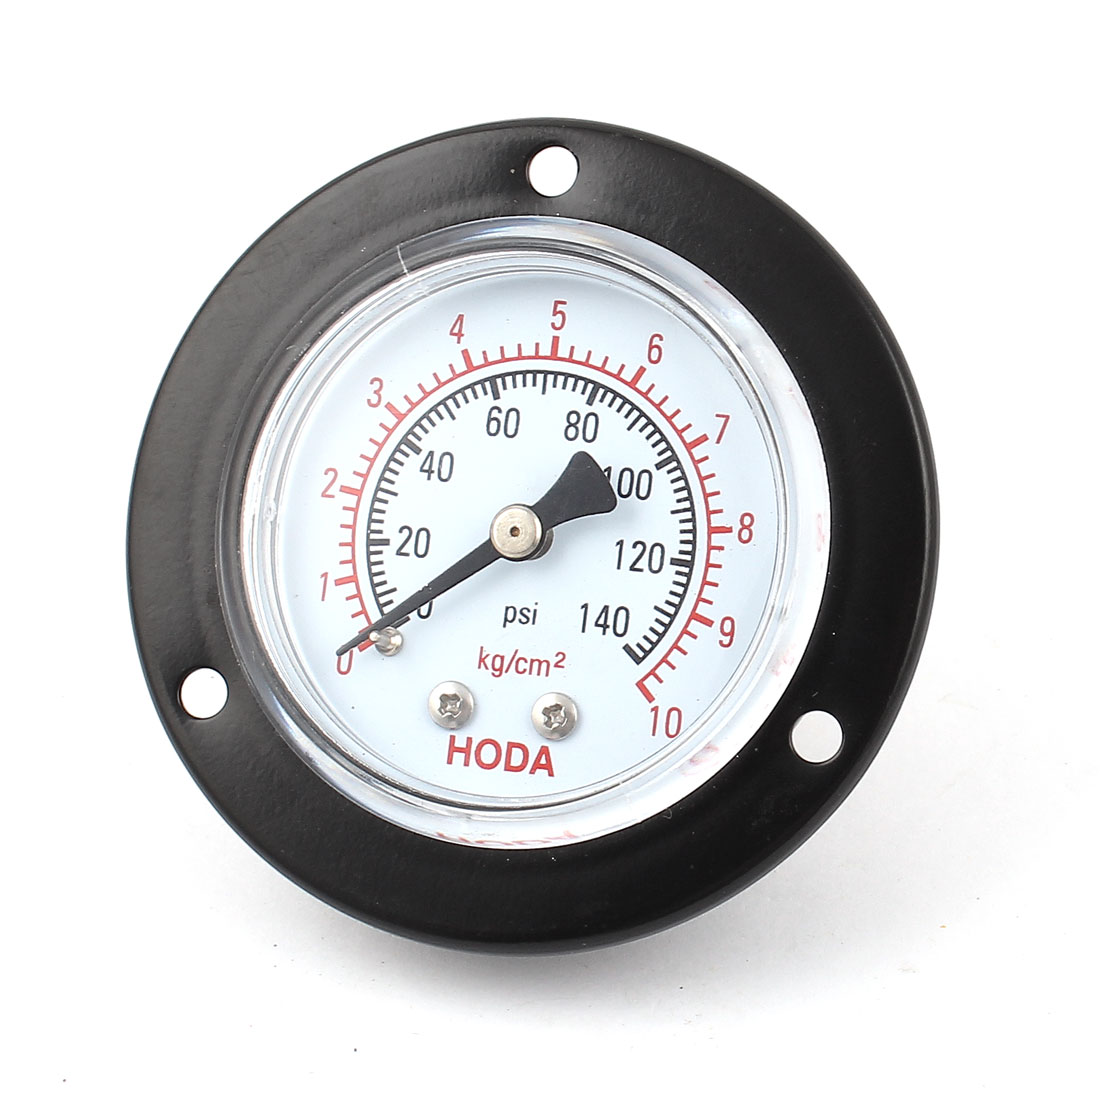 Air Compressor 1/4PT Threaded 0-10Kg/cm2 0-140psi Screw Mount Pressure Gauge